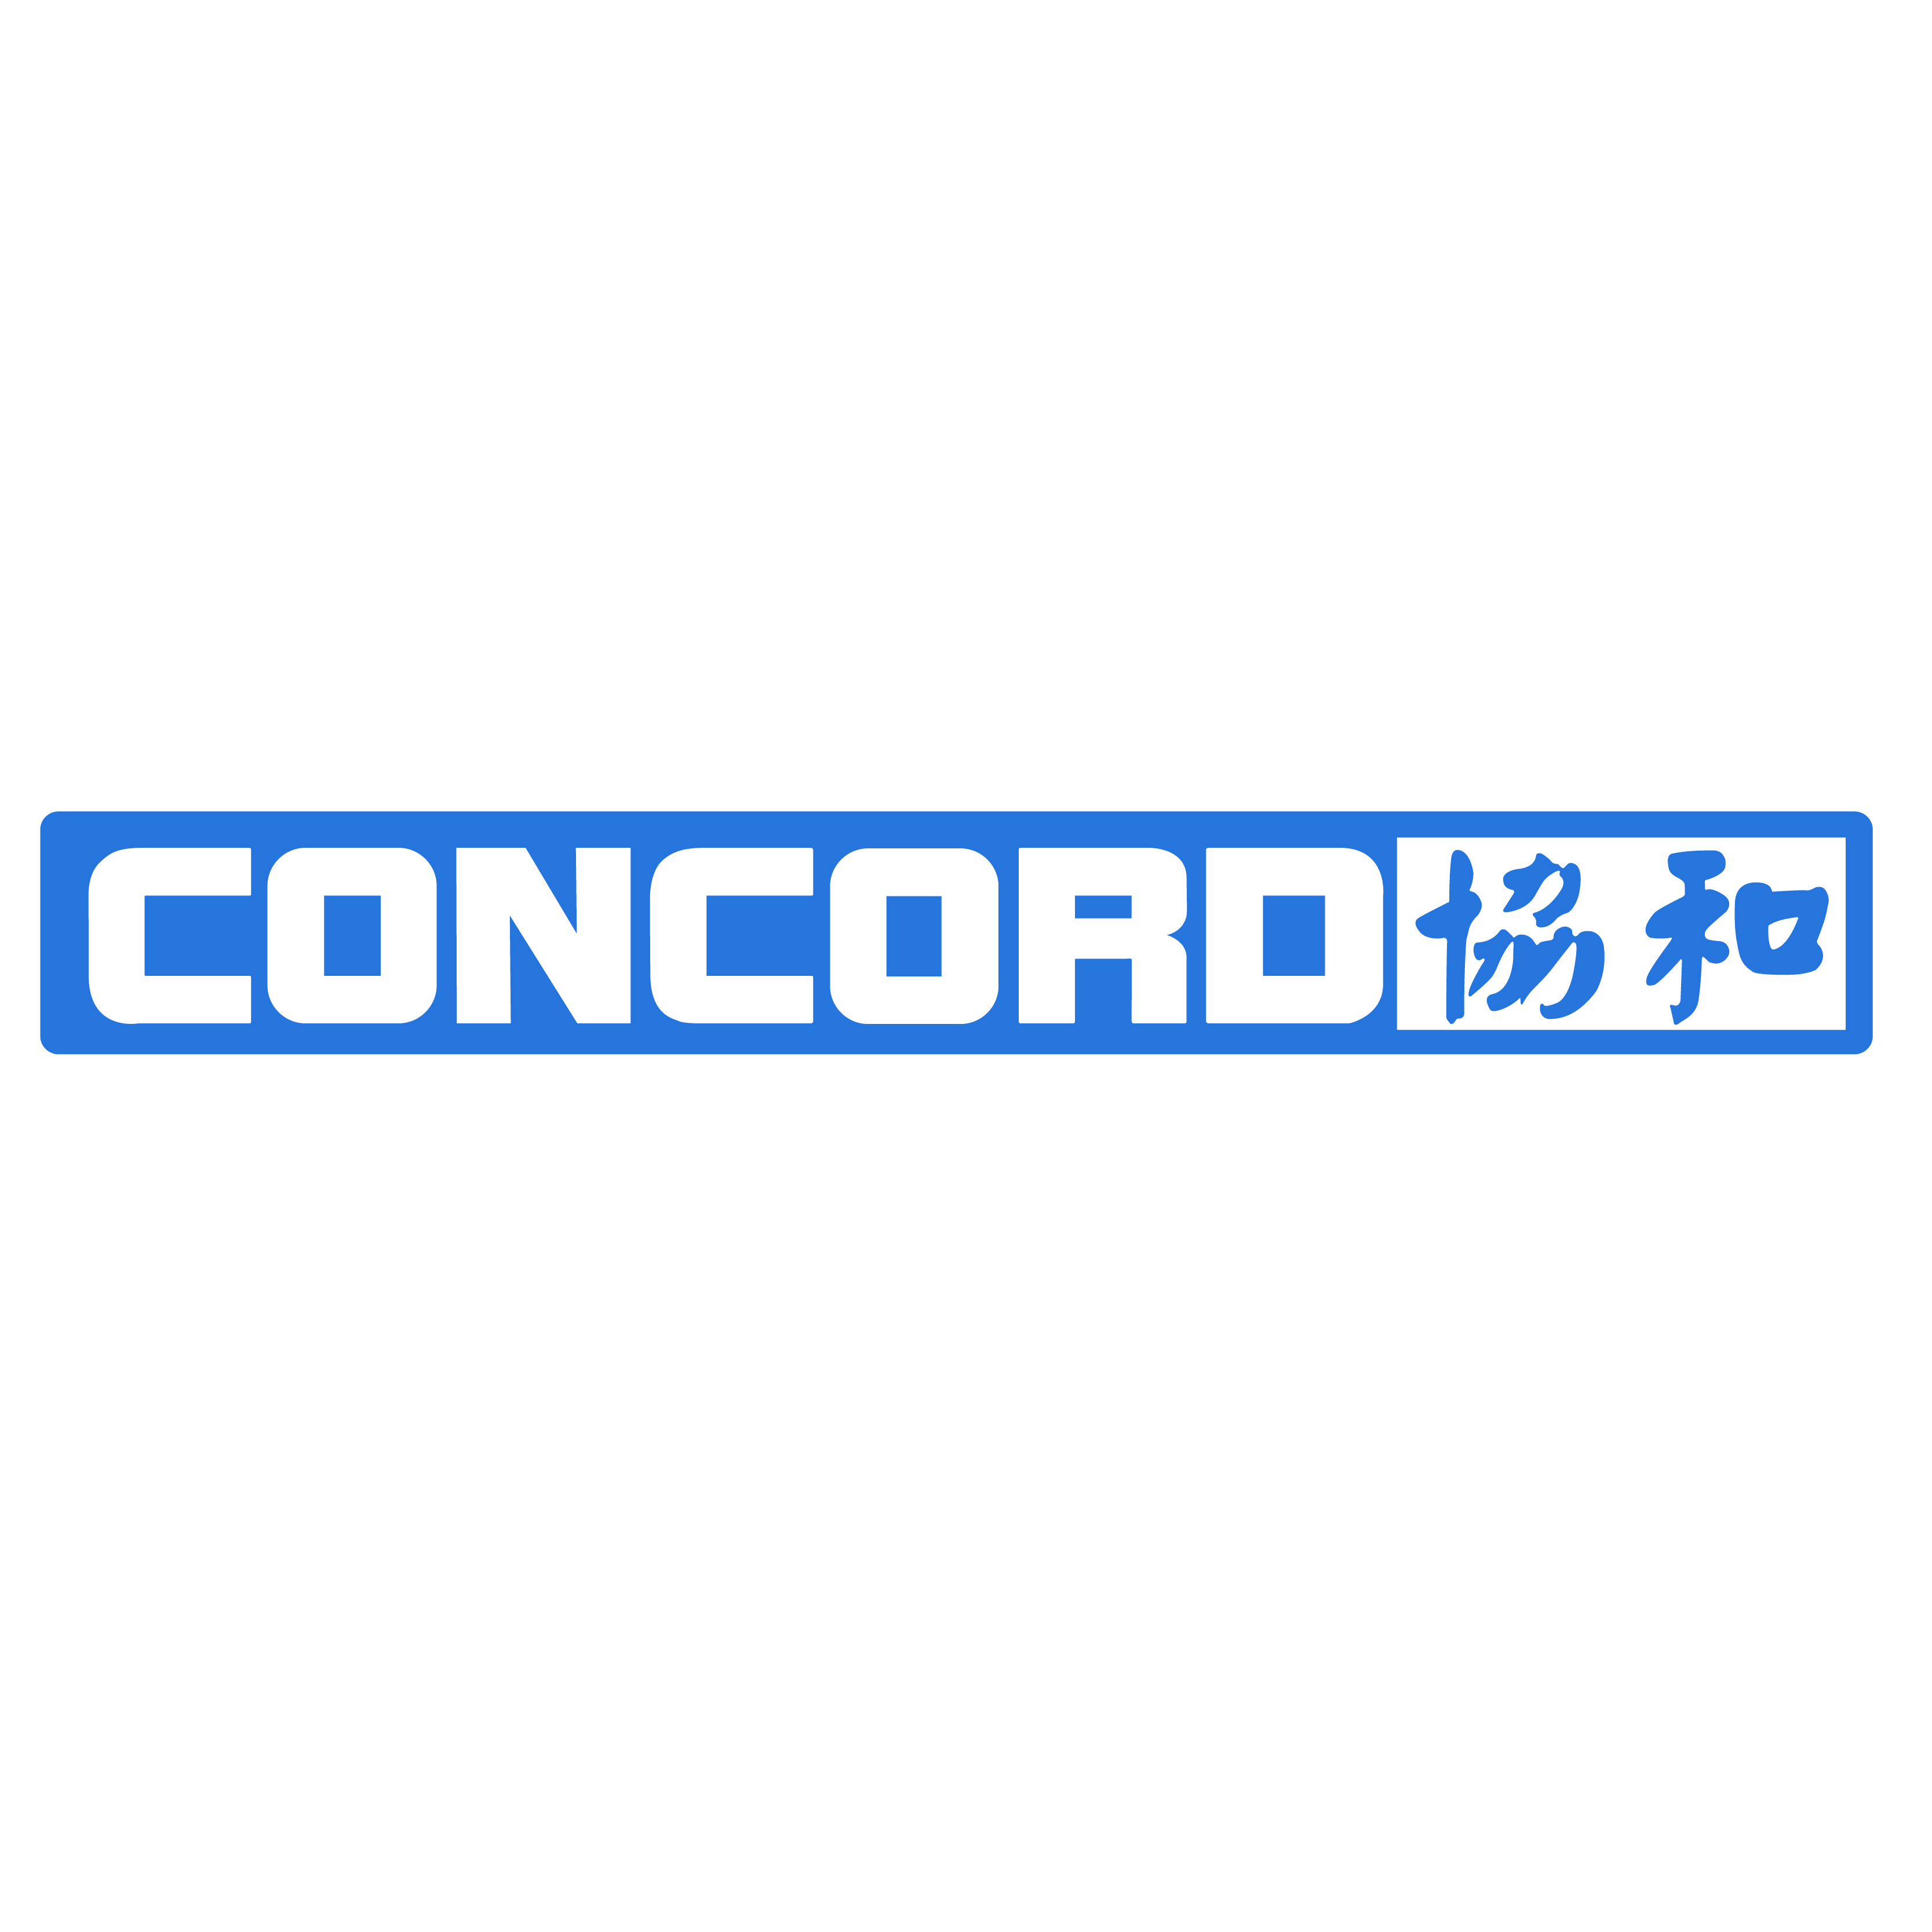 Concord tools limited